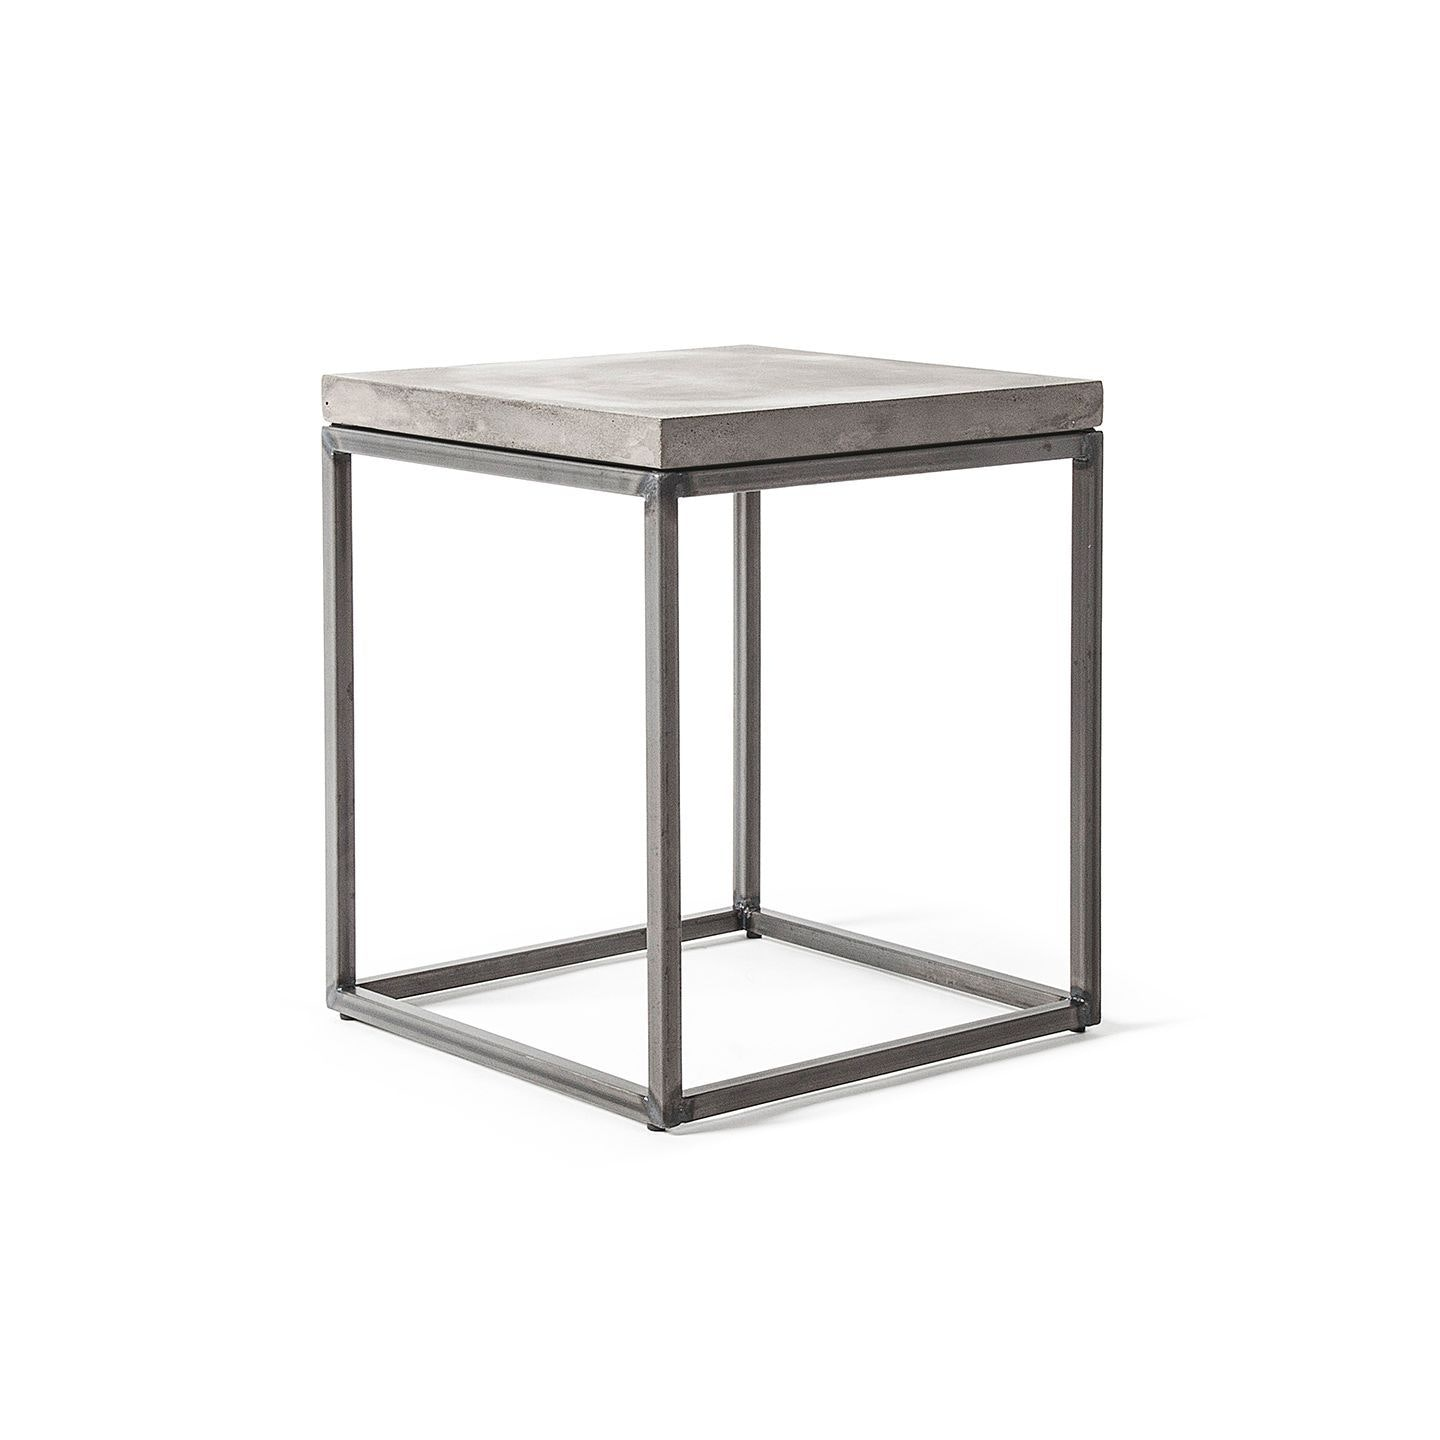 D 09147 Pe 003 Perspective Side Table 02 1